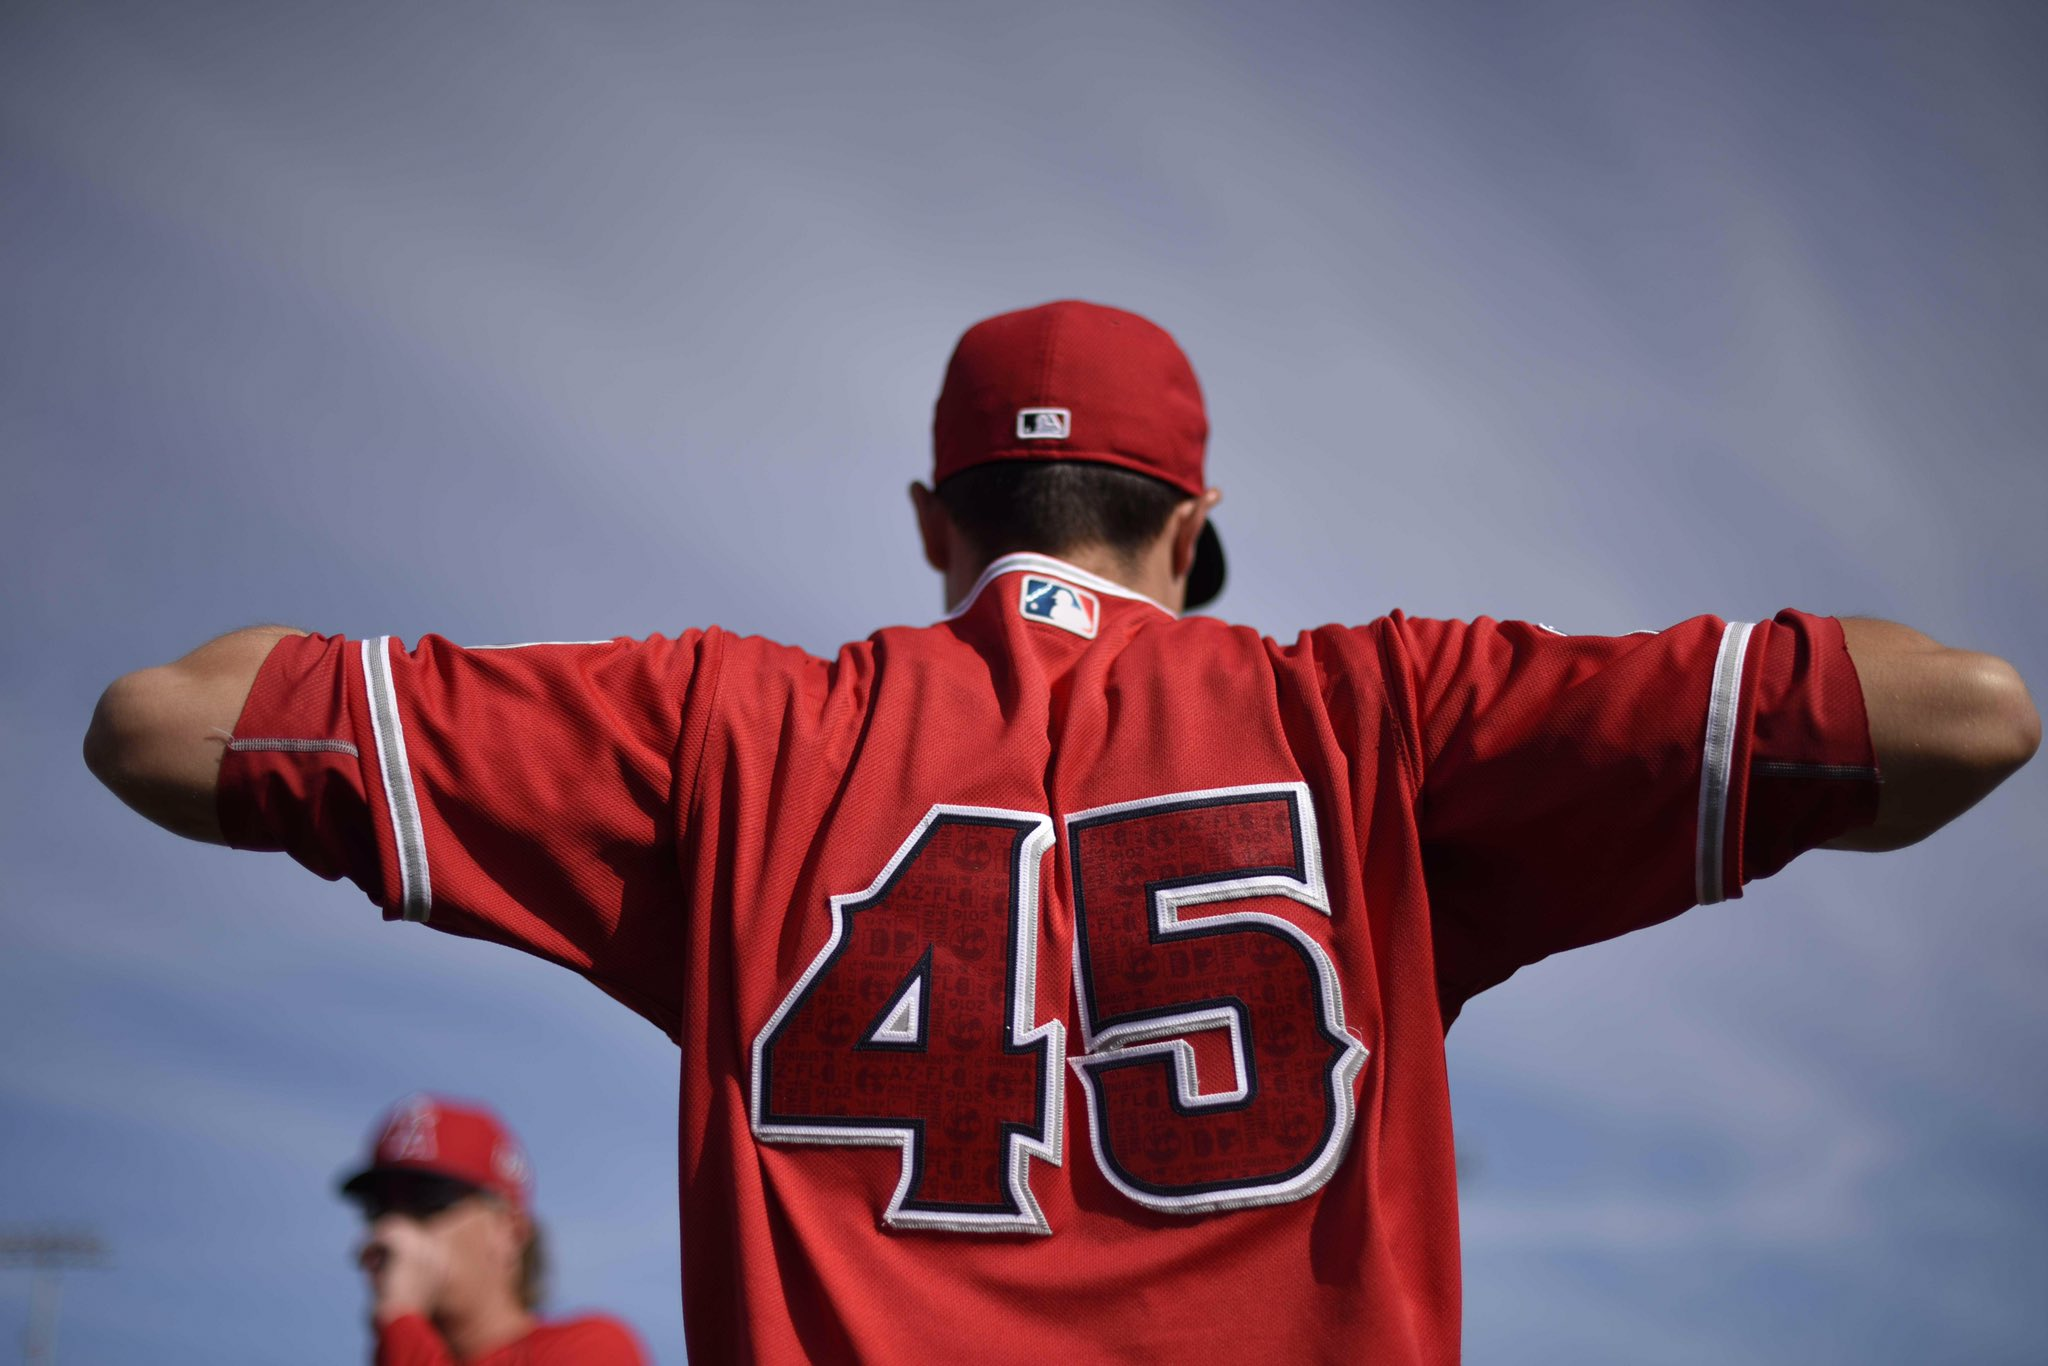 Ready to get BACK to baseball?  @TylerSkaggs37 days until our first #LAASpring game ��: https://t.co/uyyepVLkdG https://t.co/t9KpB0jWph